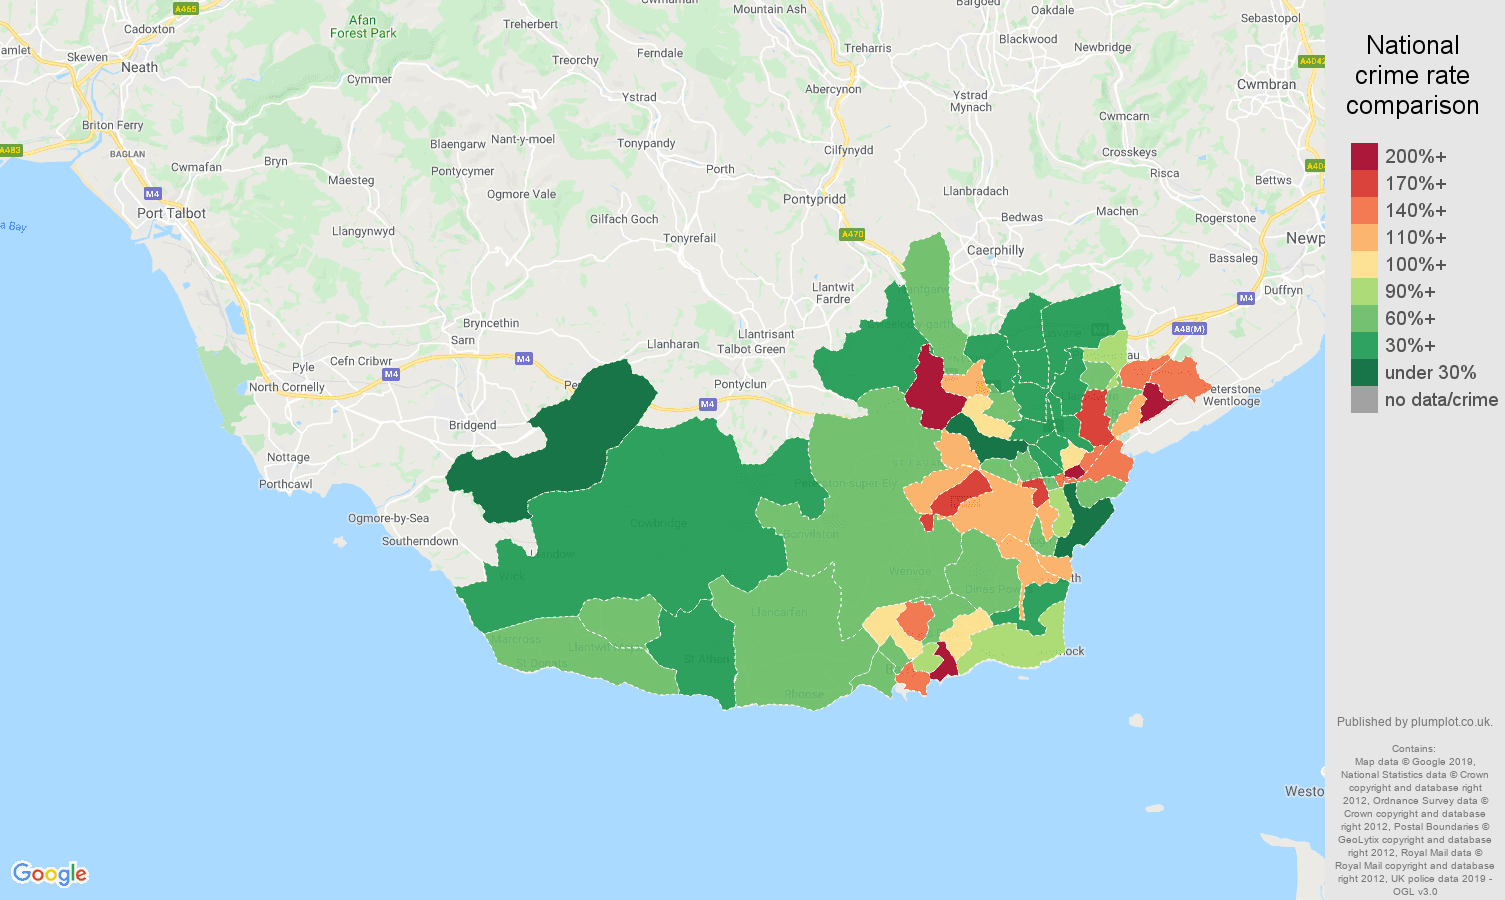 South Glamorgan other crime rate comparison map